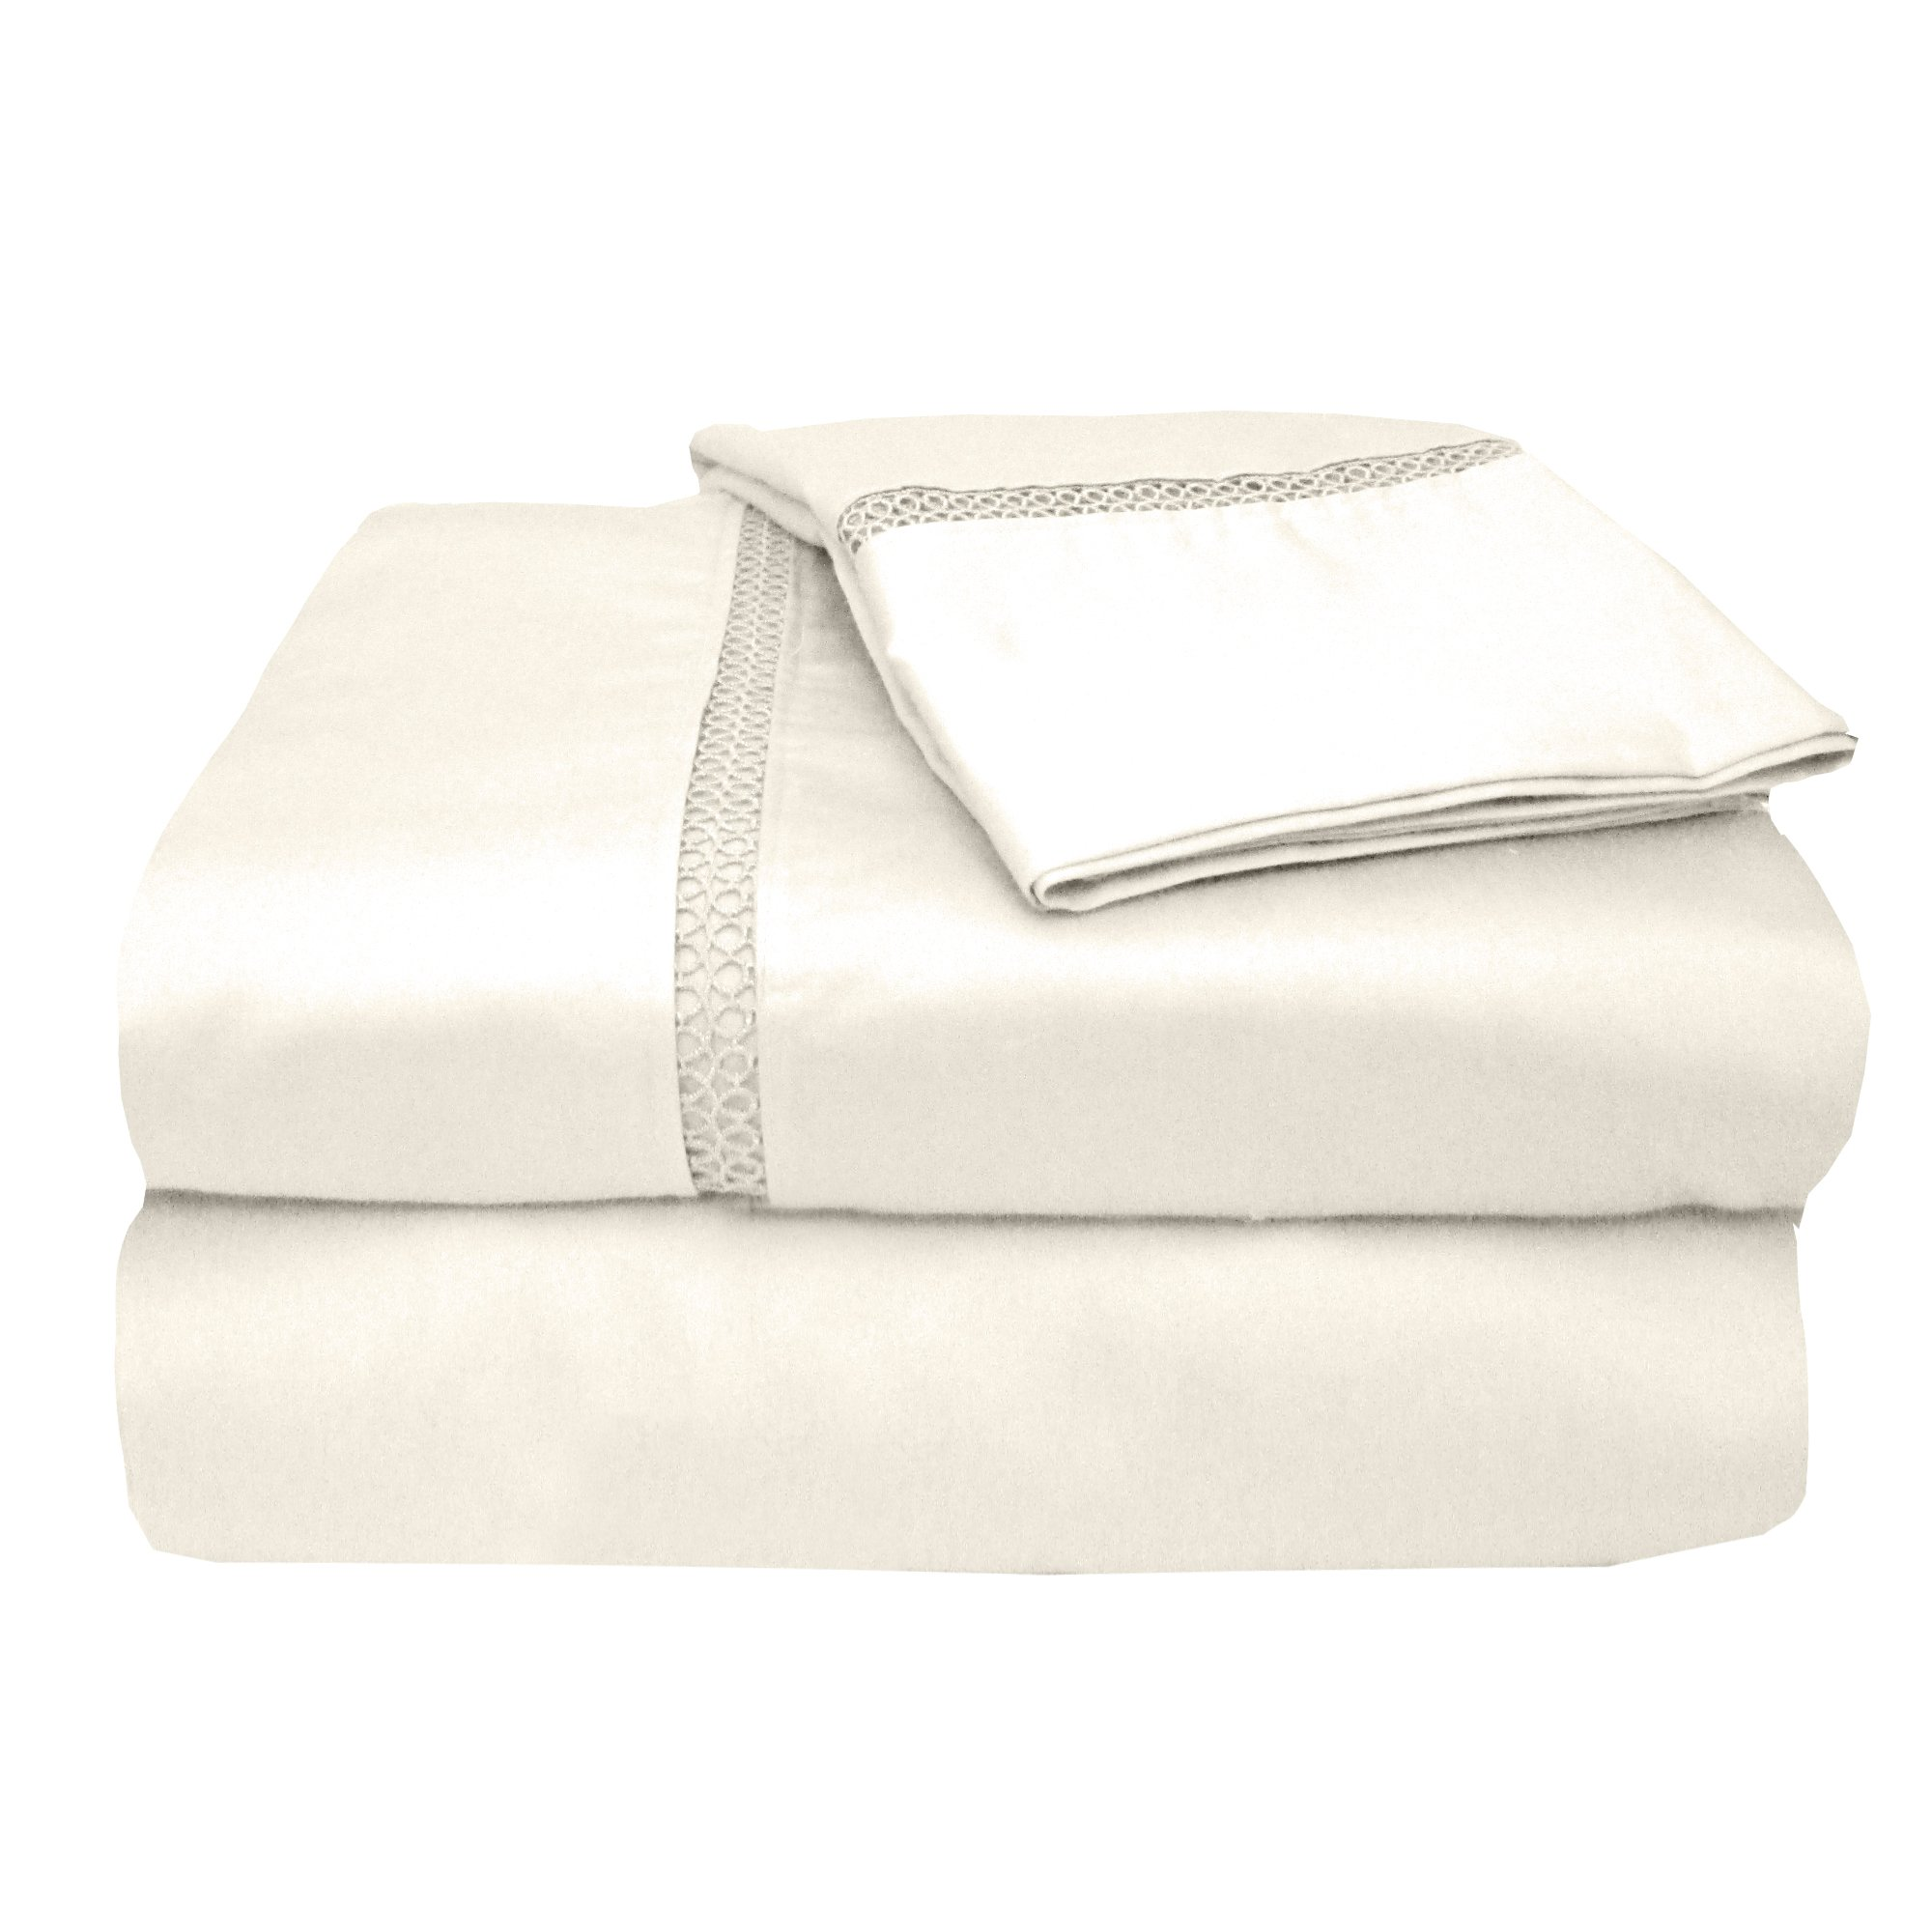 Veratex The Princeton Collection 1200 Thread Count 100% Egyptian Cotton Sateen Bed Sheet Set With Elegant Stitch Hem Design, California King Size, Ivory